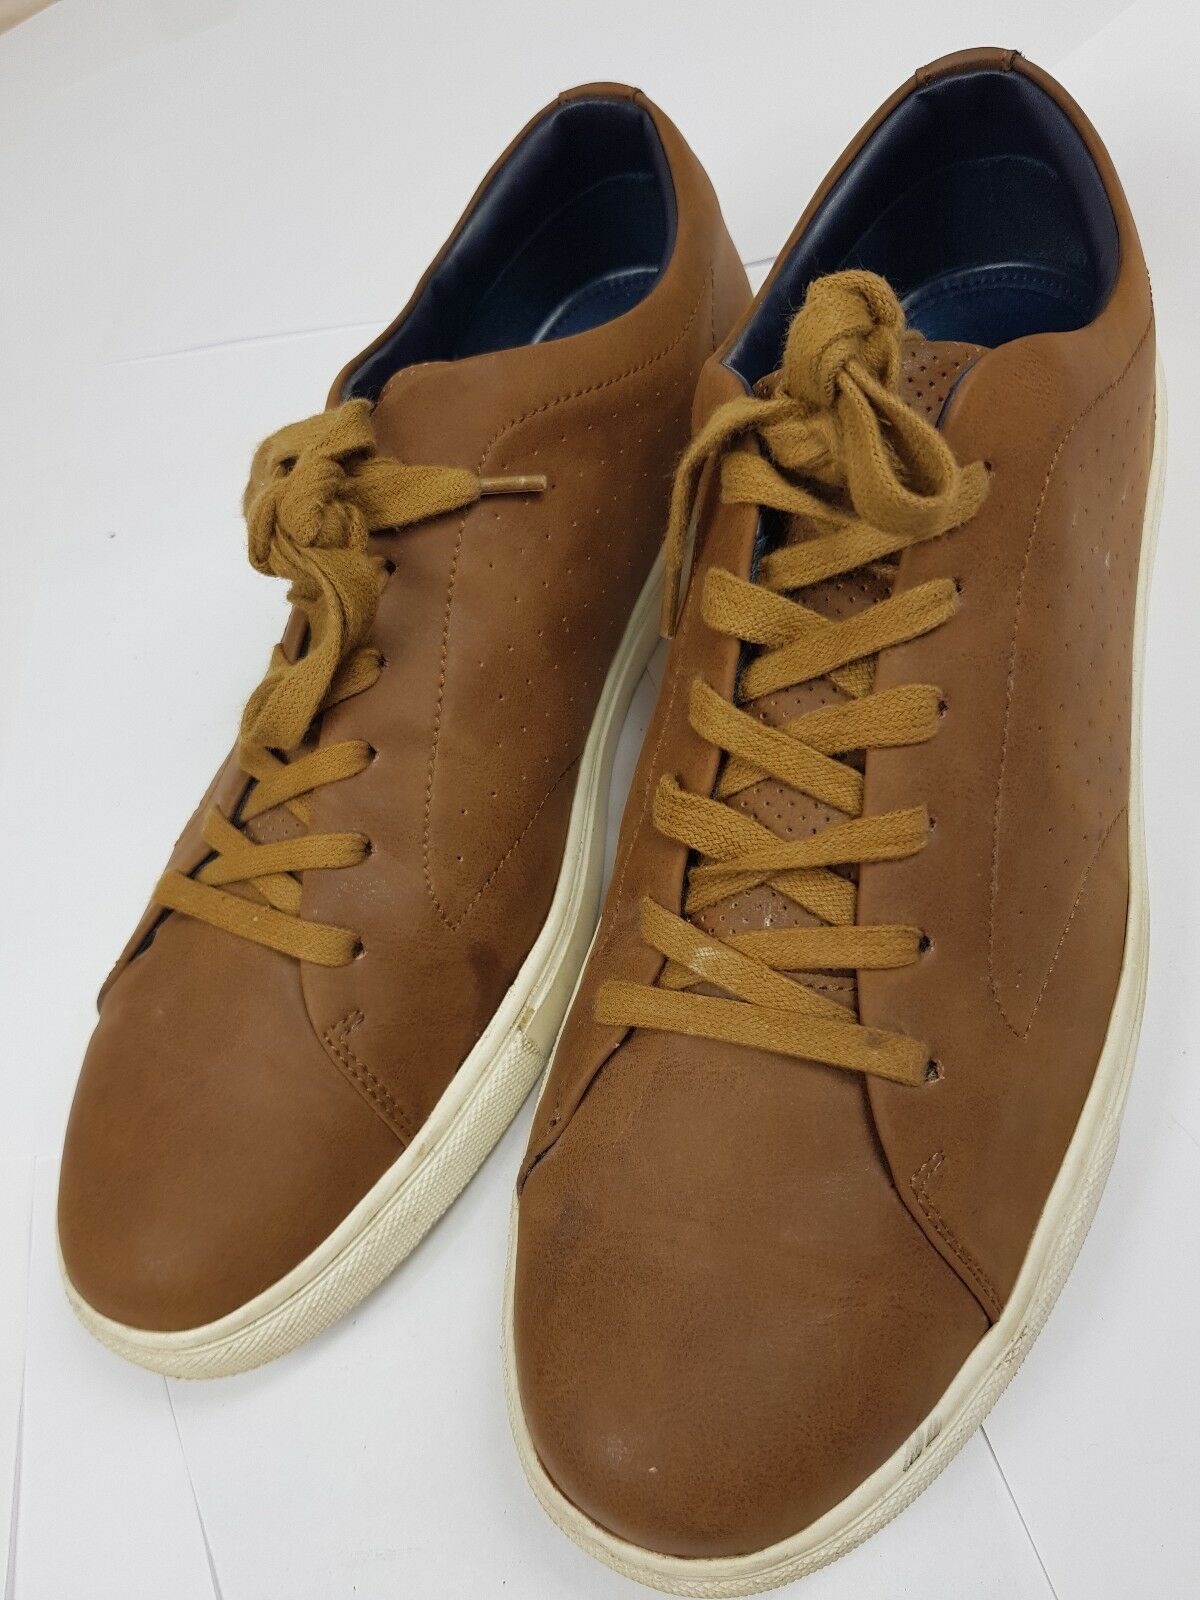 JONES Bootmakers Tan Brown Lace Up Casual Leather shoes   Pre-worn